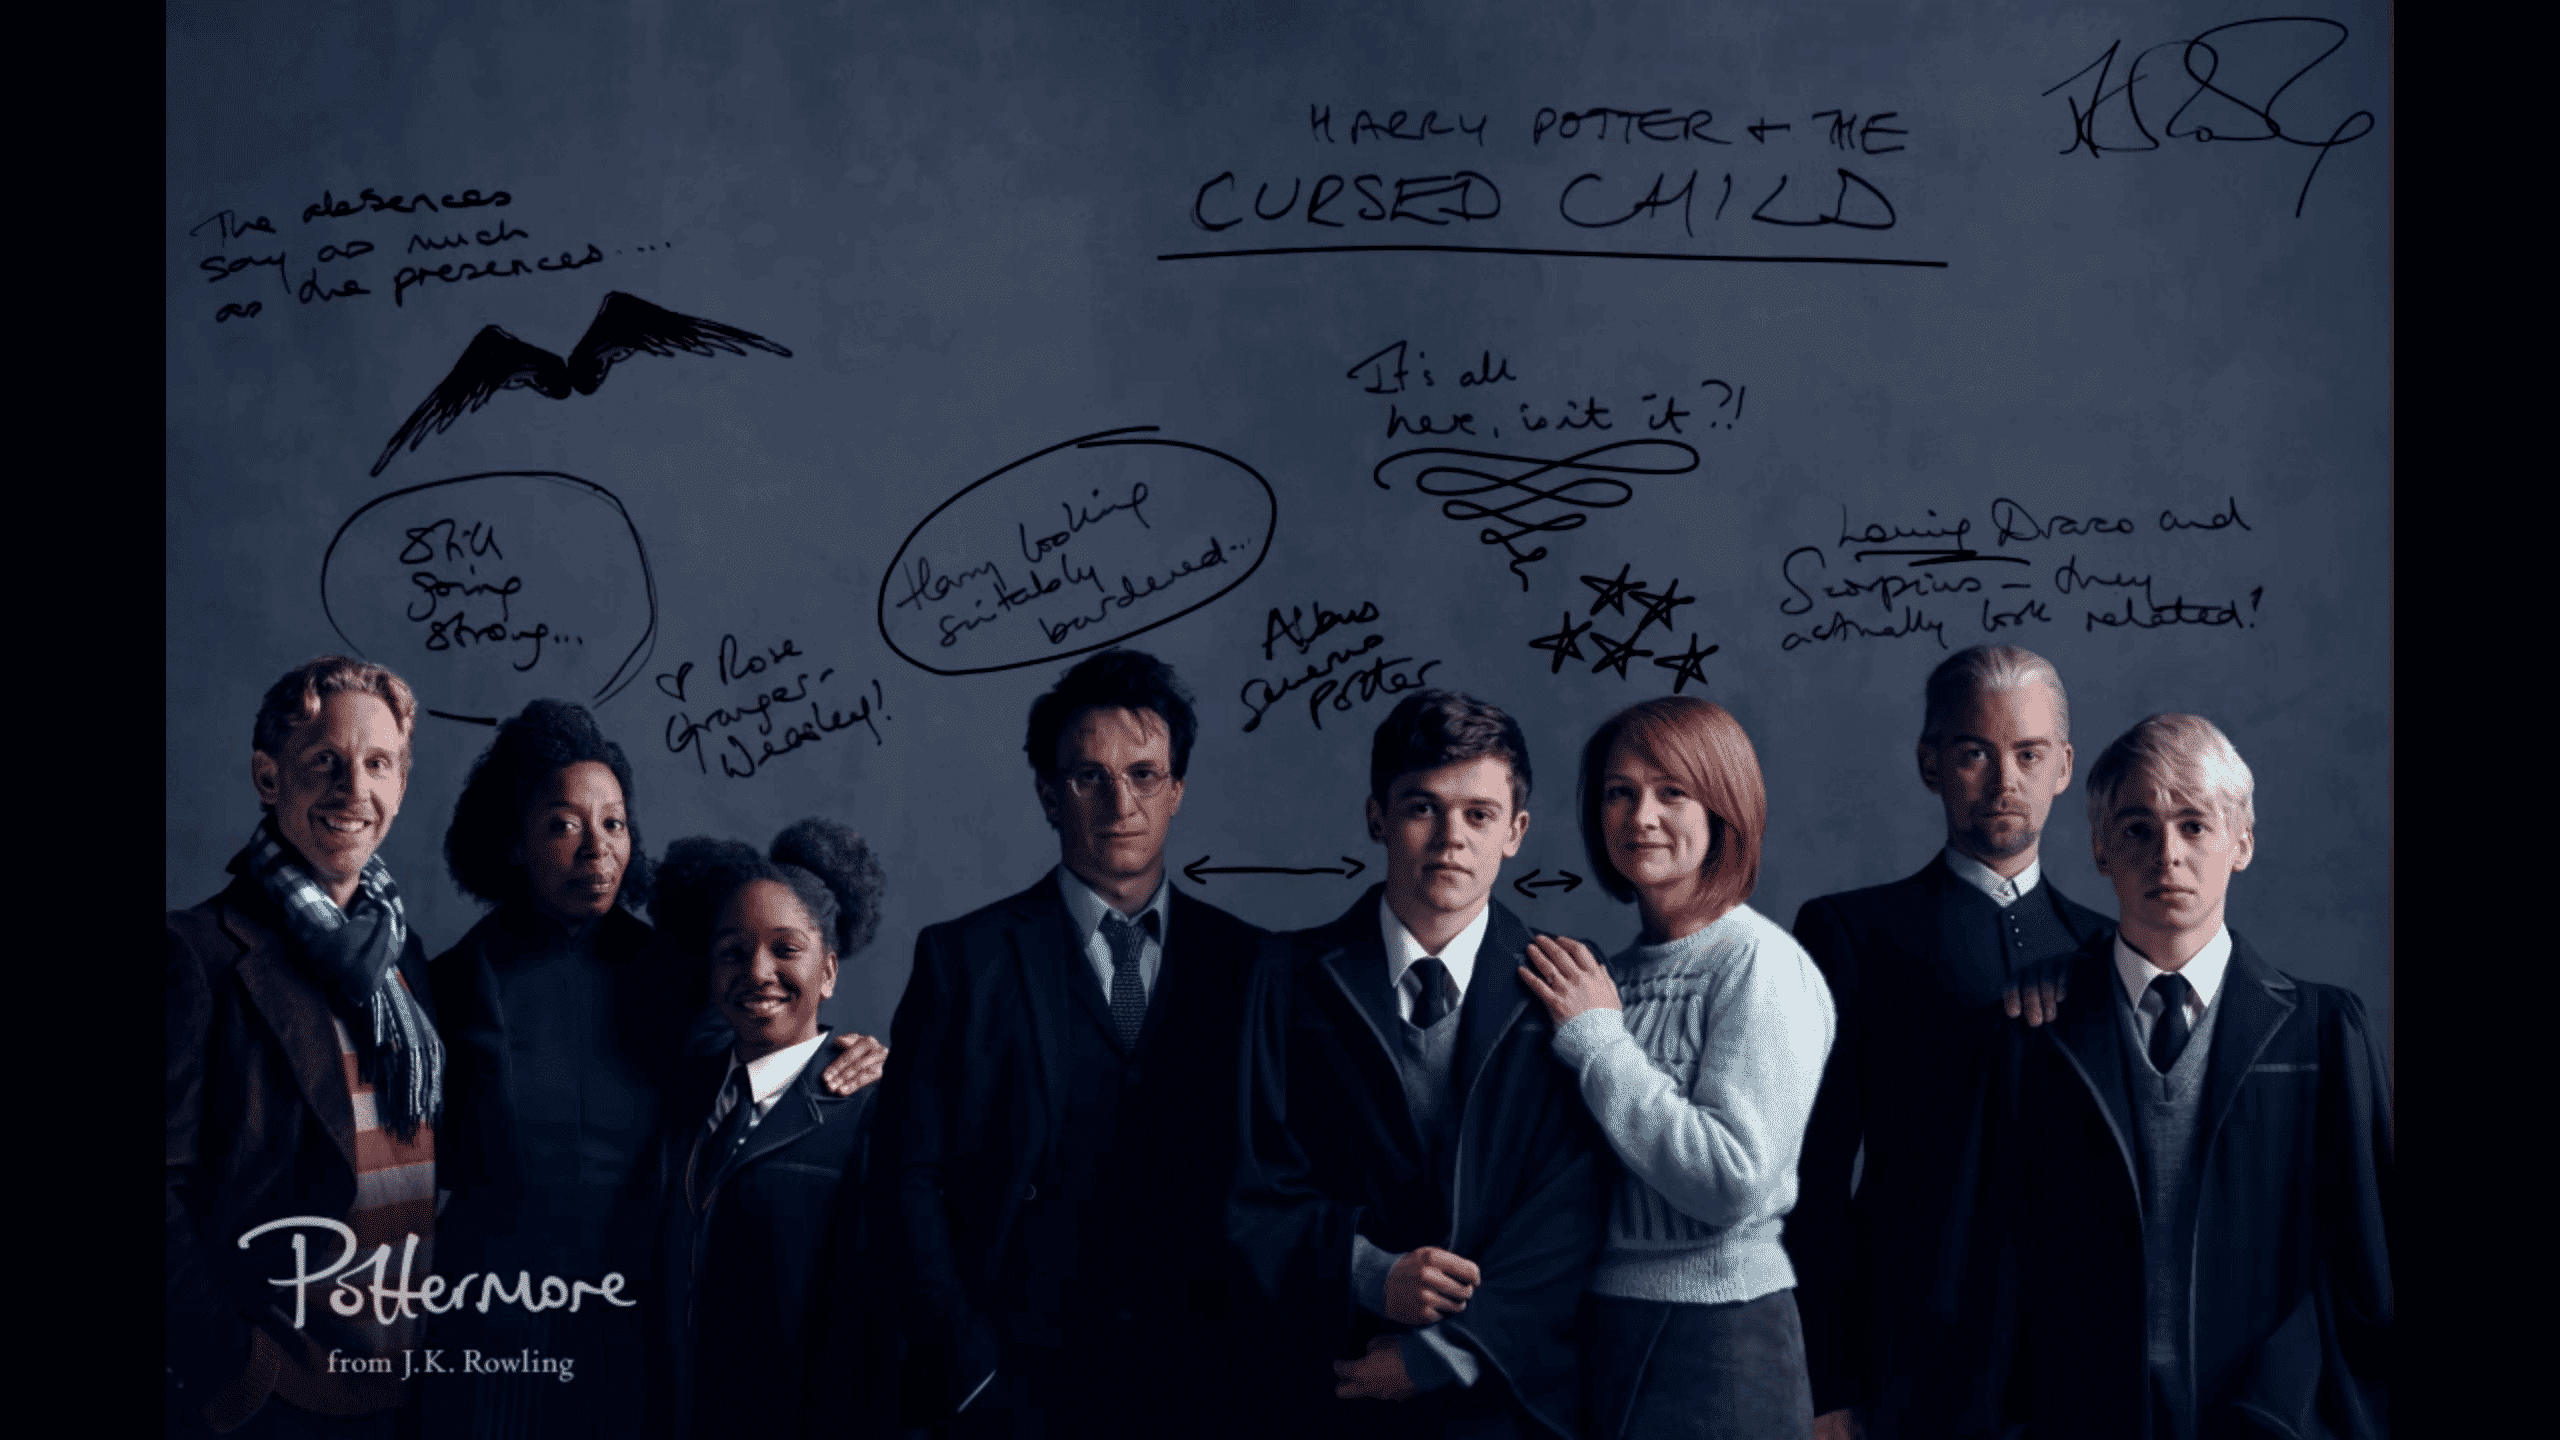 J.K. Rowling's notes on 'Harry Potter and the Cursed Child' plays cast revealed